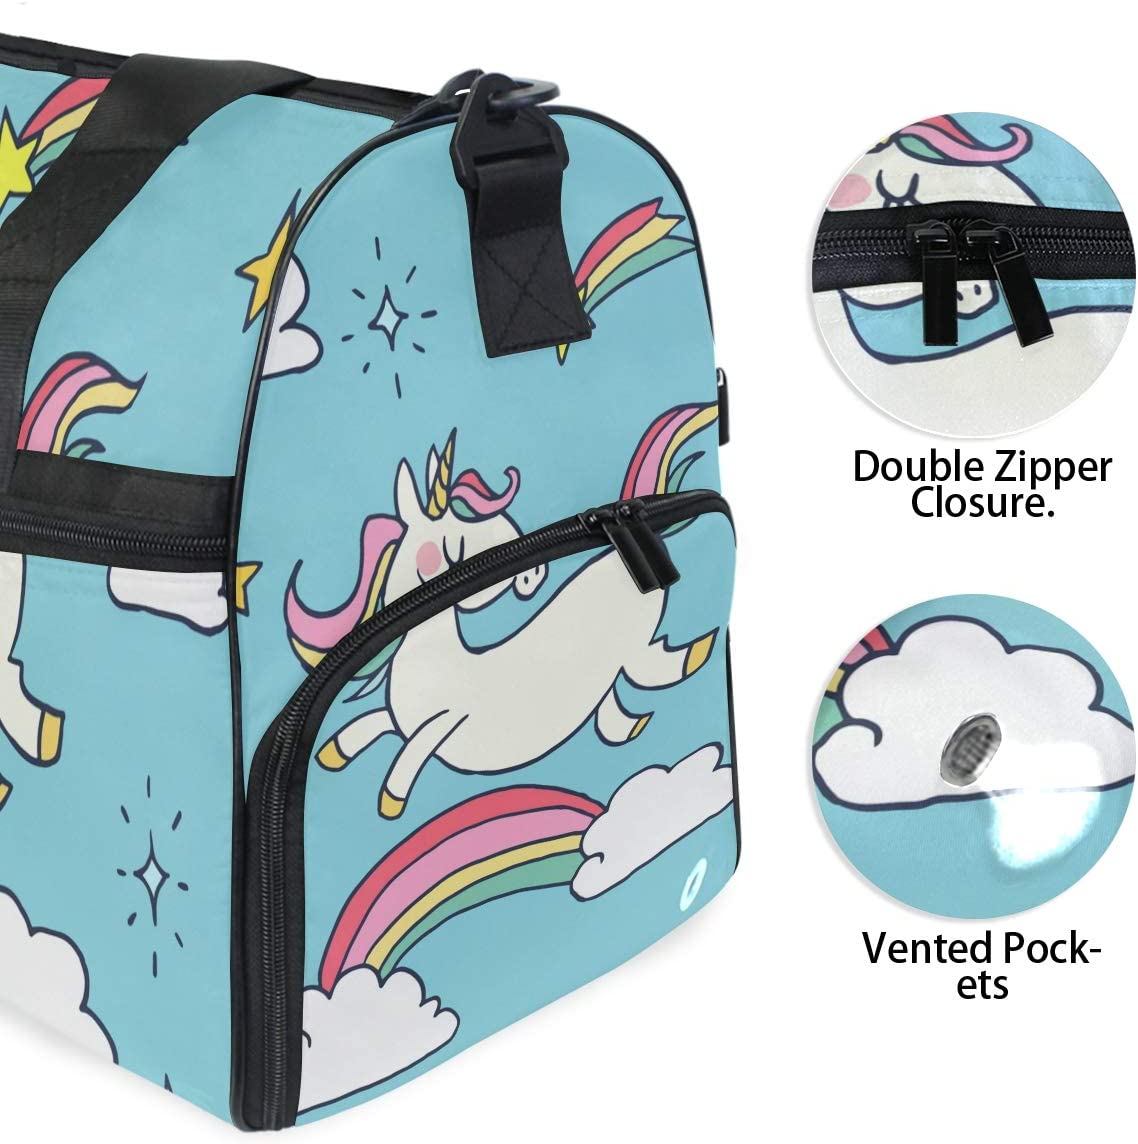 Travel Duffels Happy Unicorn Duffle Bag Luggage Sports Gym for Women /& Men